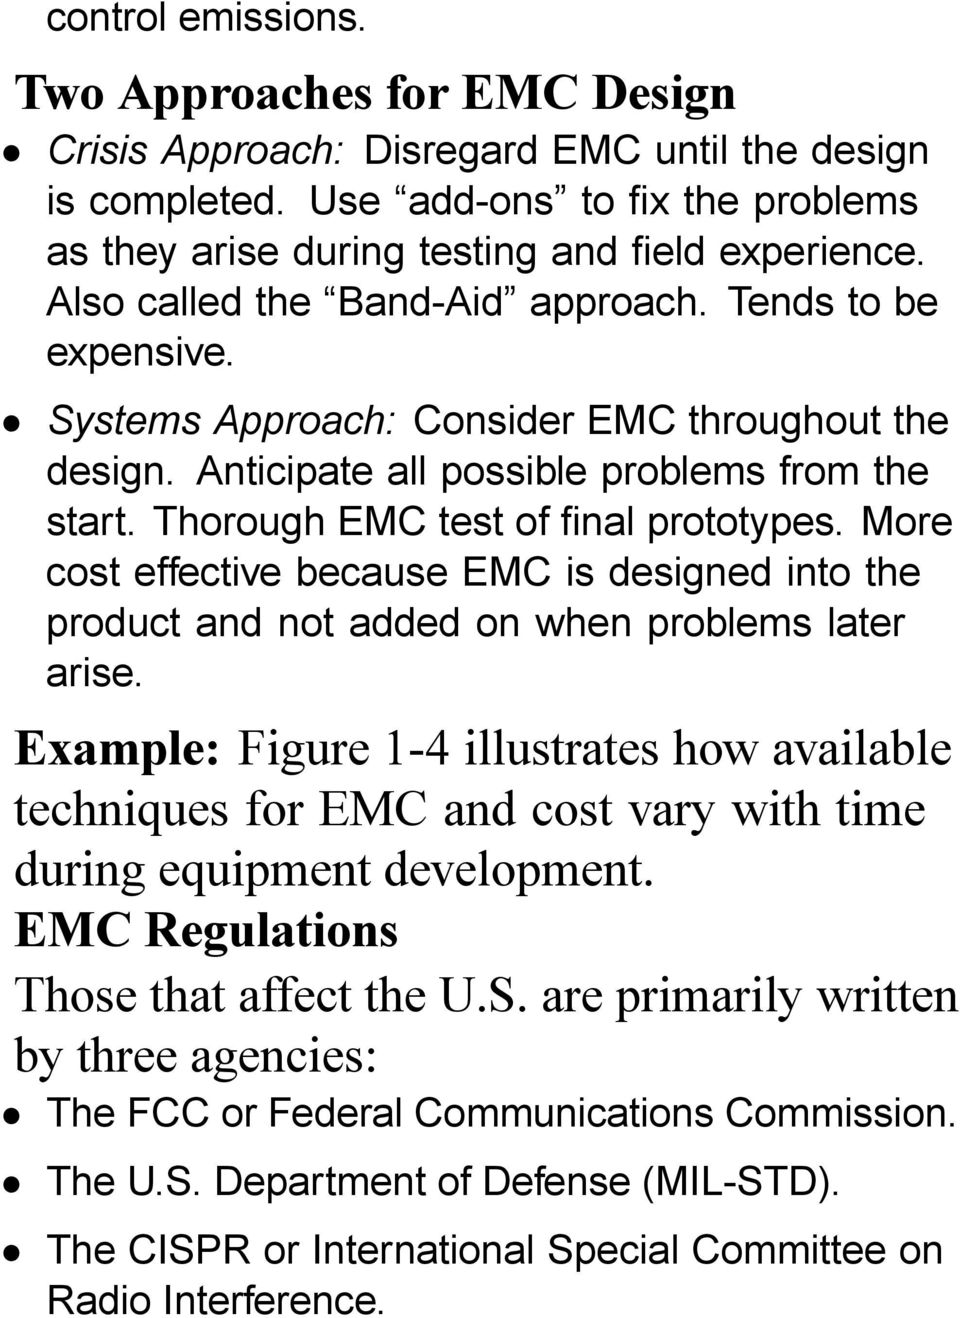 More cost effective because EMC is designed into the product and not added on when problems later arise.